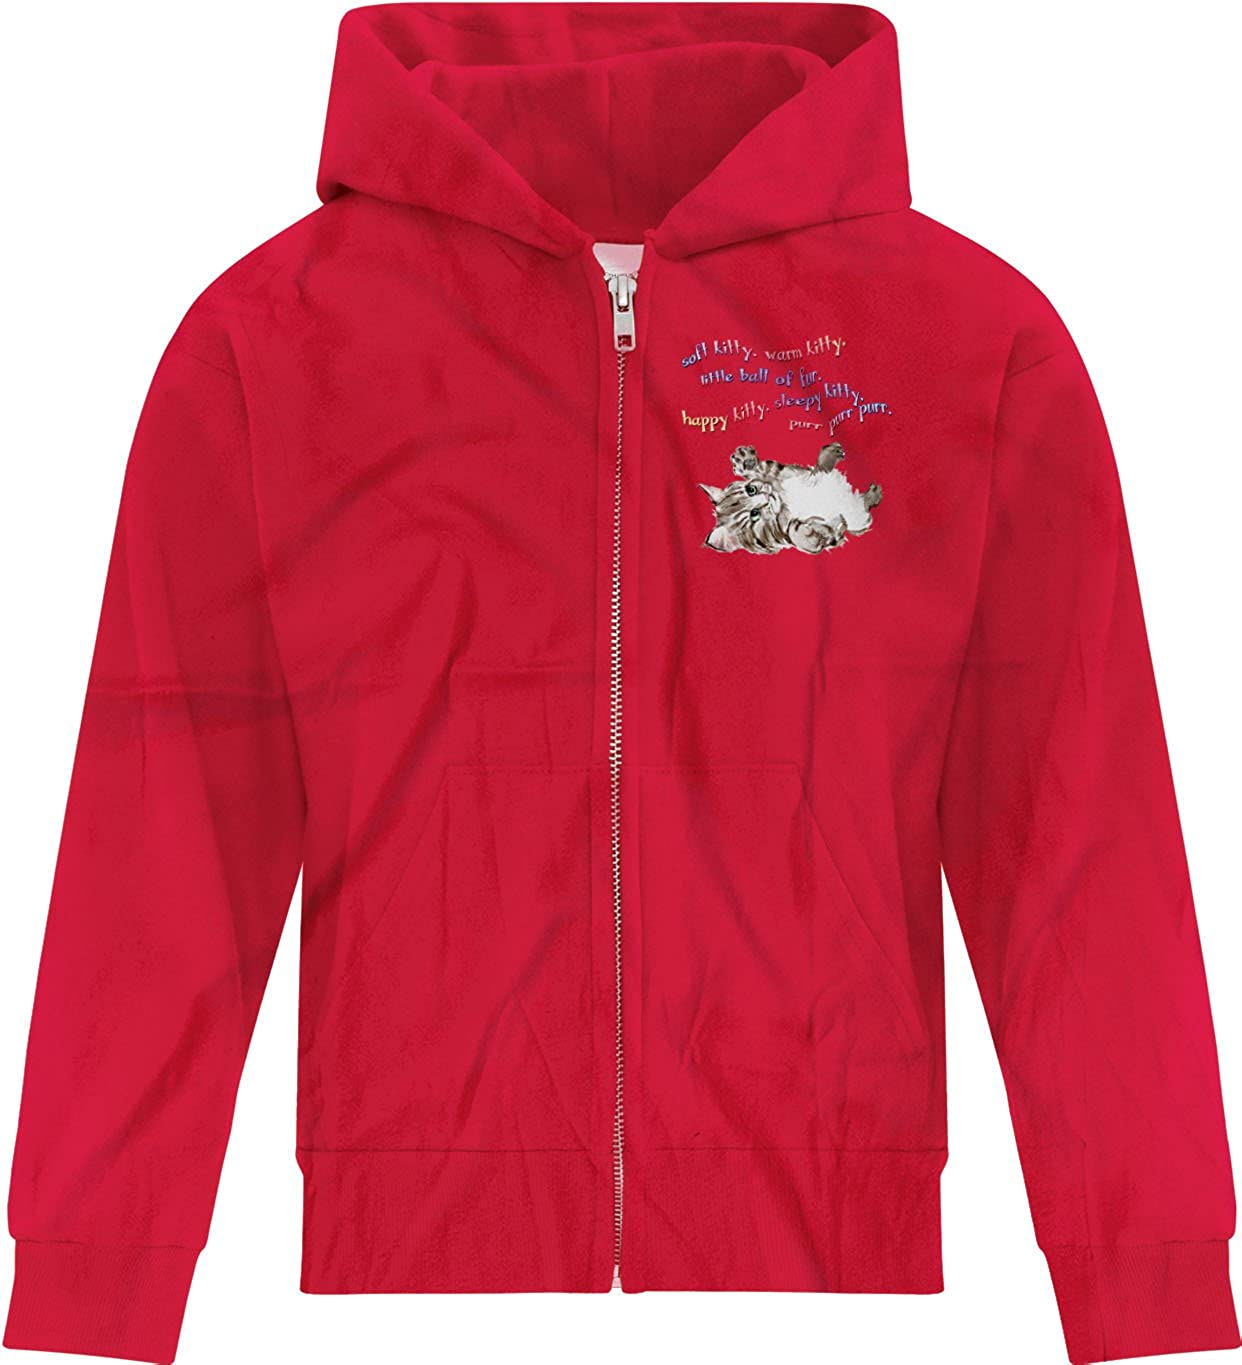 BSW Youth Boys Soft Kitty Sheldon Cooper Big Bang Theory Song Zip Hoodie